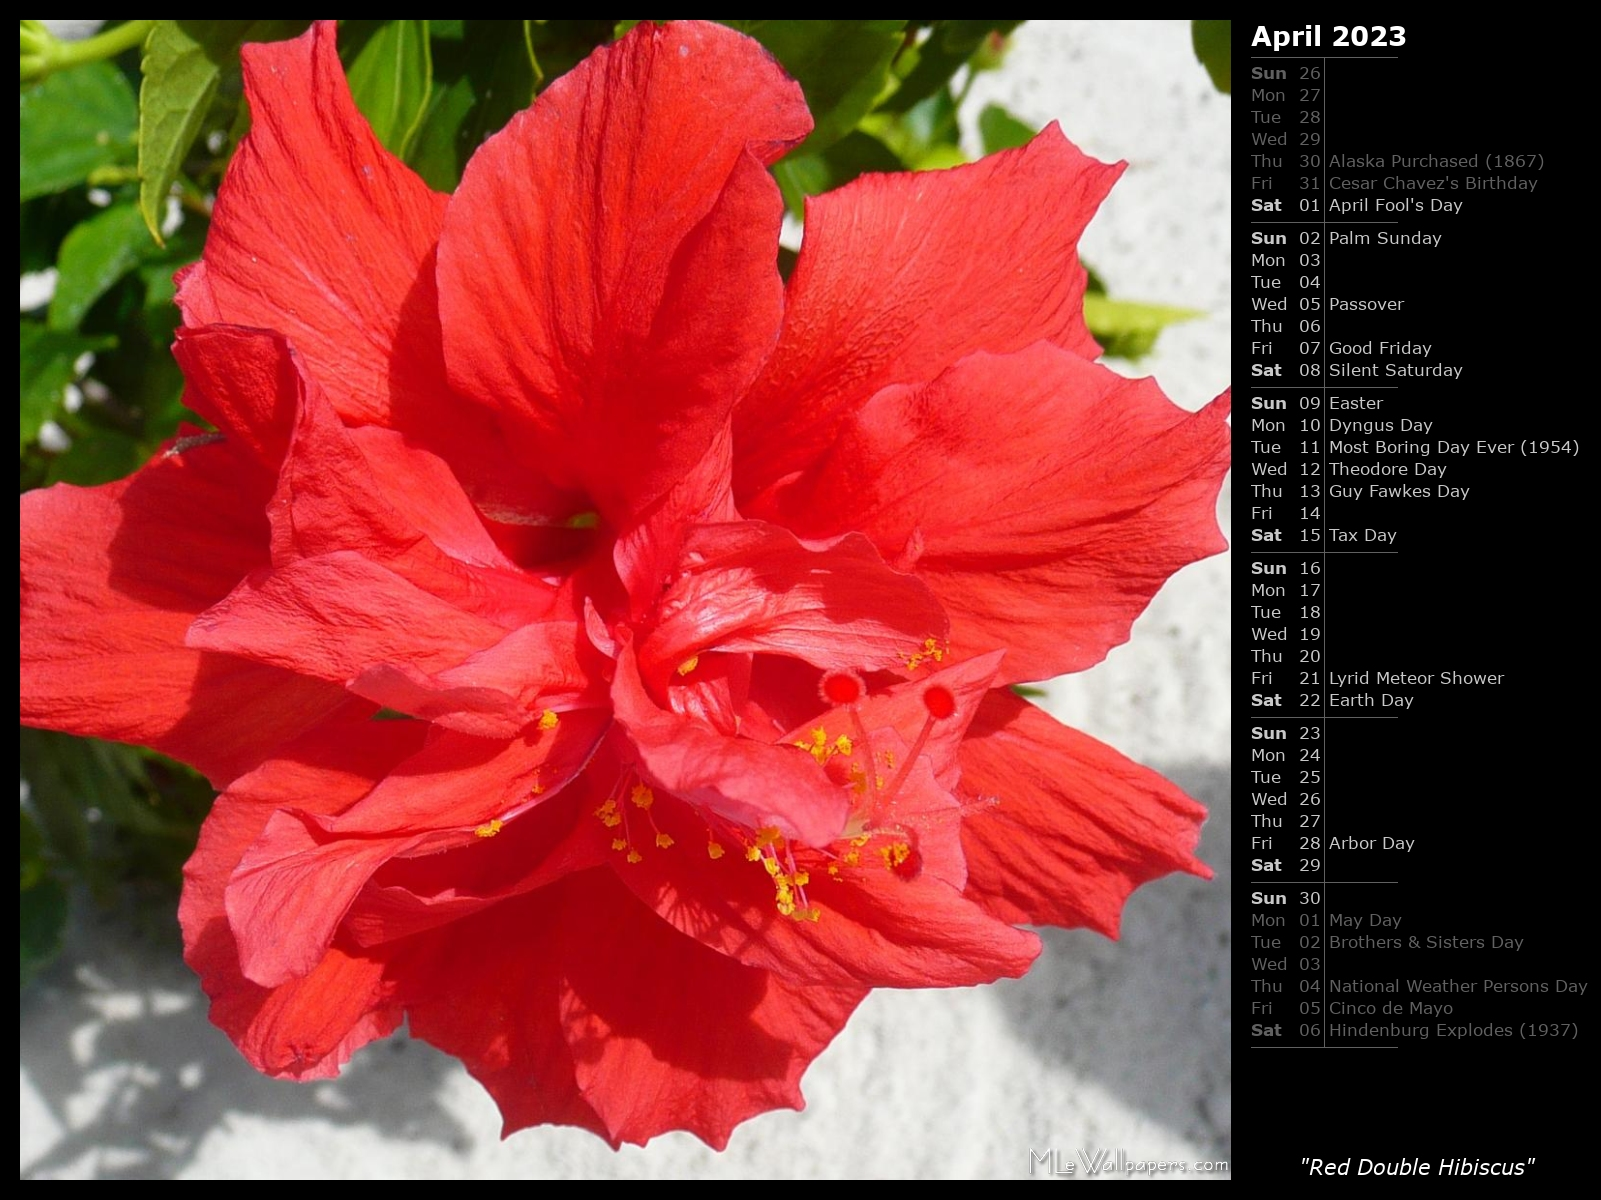 Mlewallpapers red double hibiscus calendar red double hibiscus izmirmasajfo Image collections